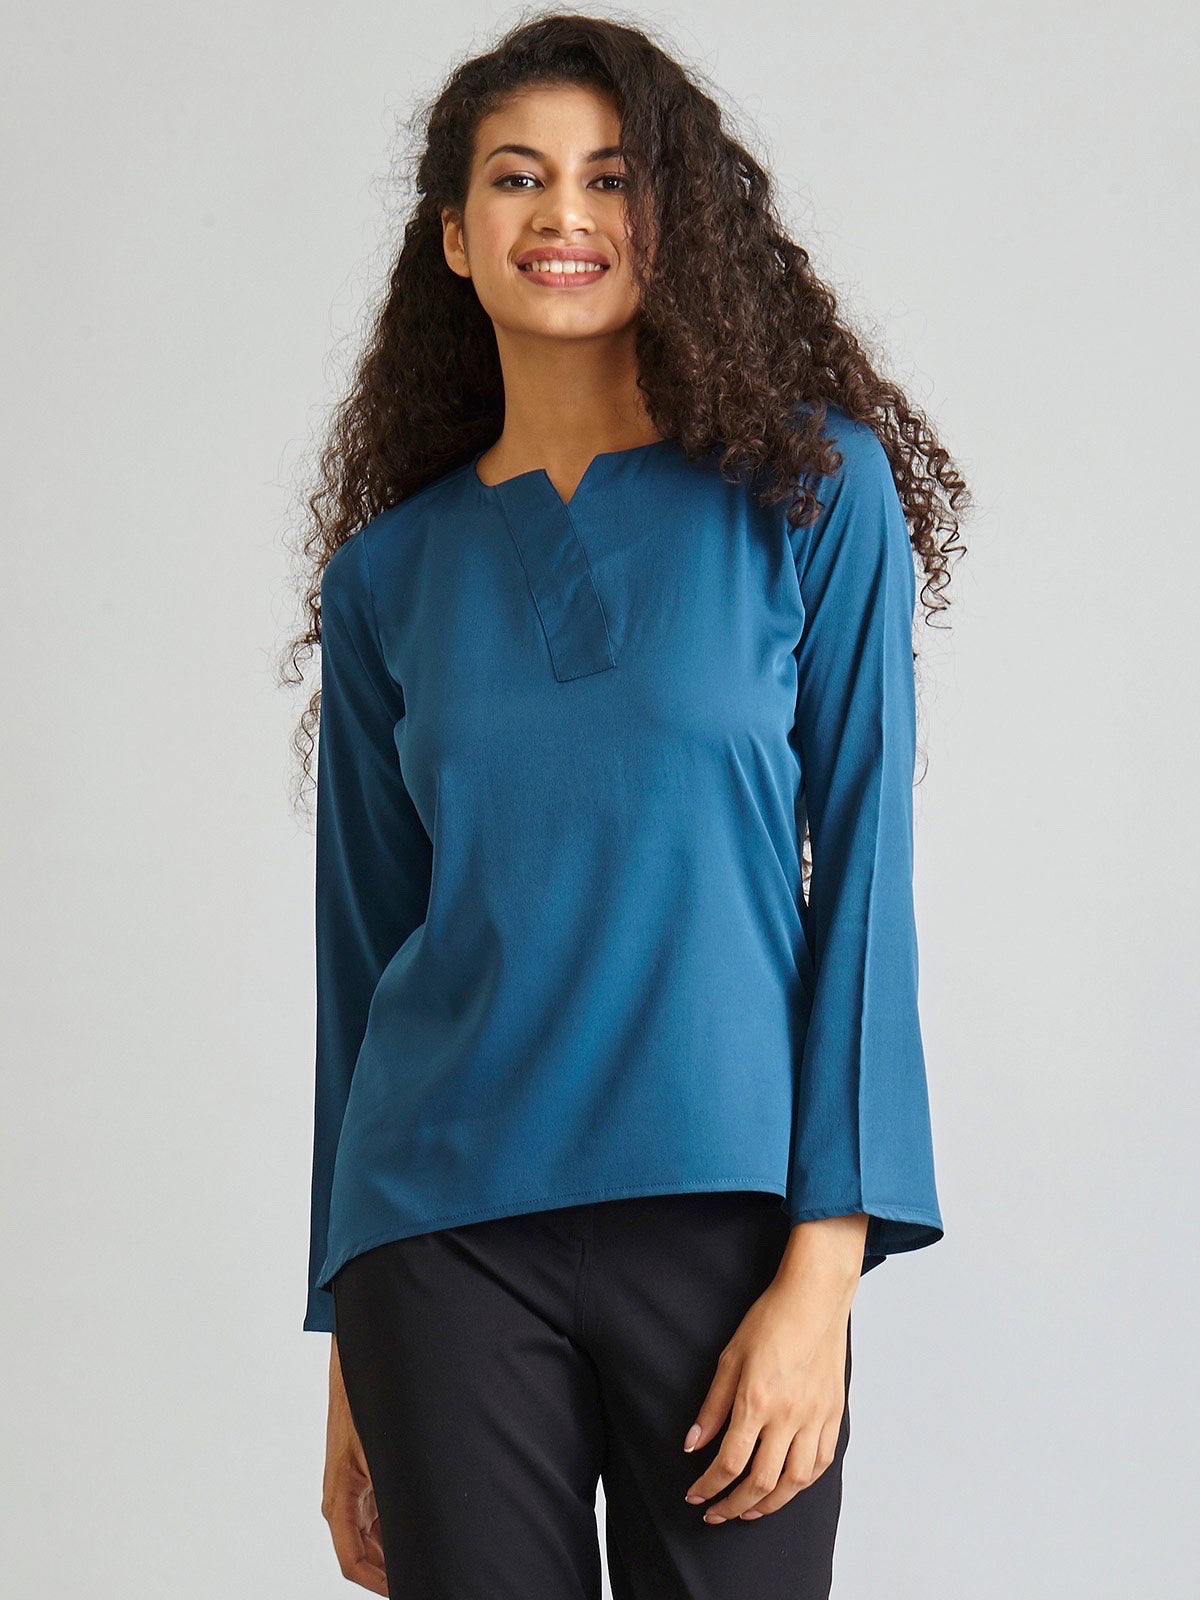 Round Neck Detailed Top - Peacock Blue